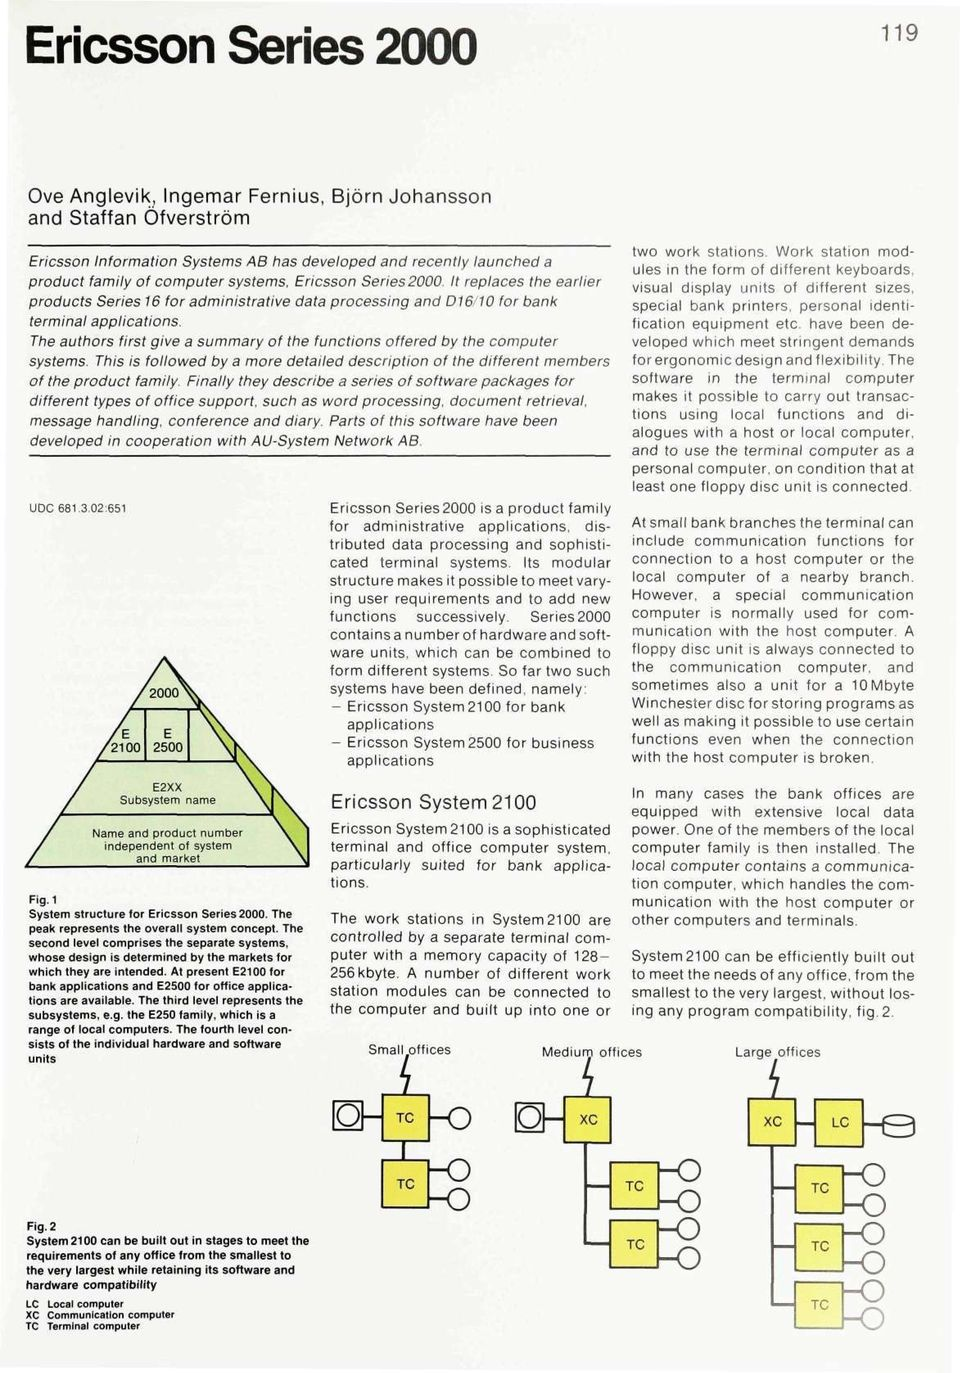 The authors first give a summary of the functions offered by the computer systems. This is followed by a more detailed description of the different members of the product family.